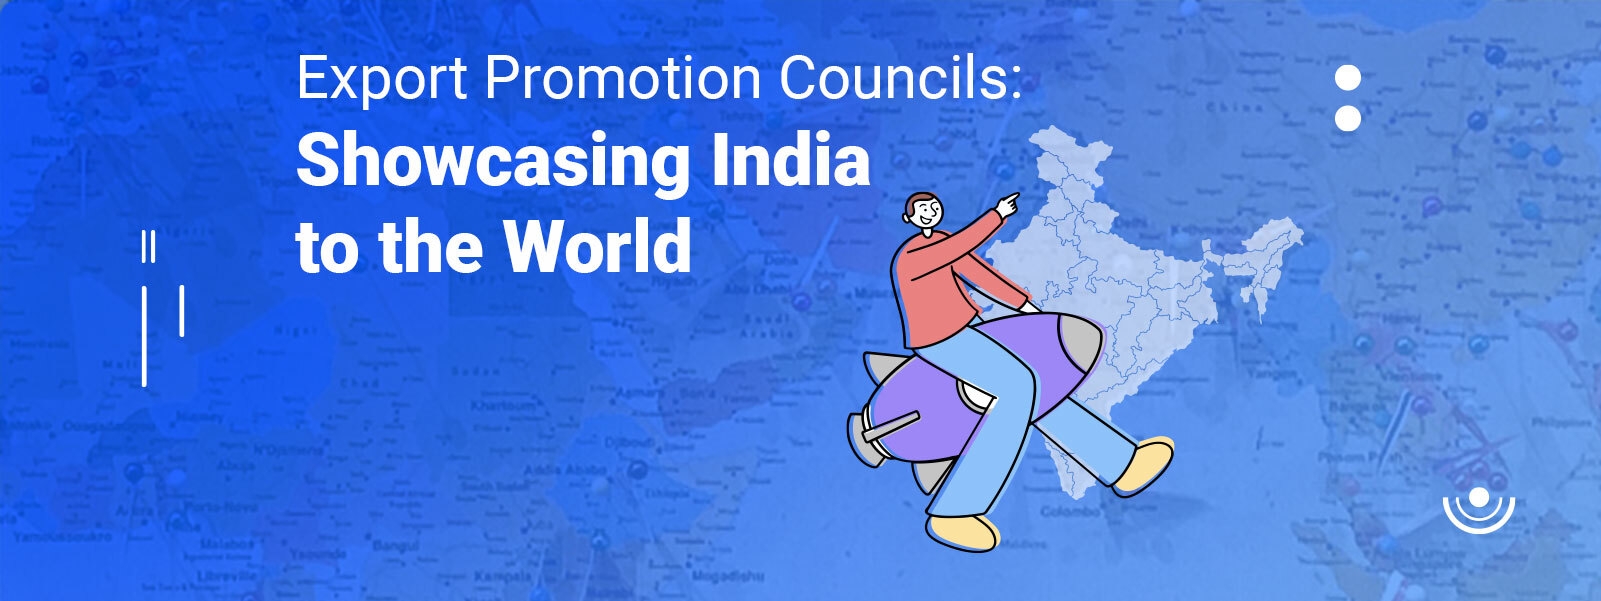 Export Promotion Councils: Showcasing India to the World